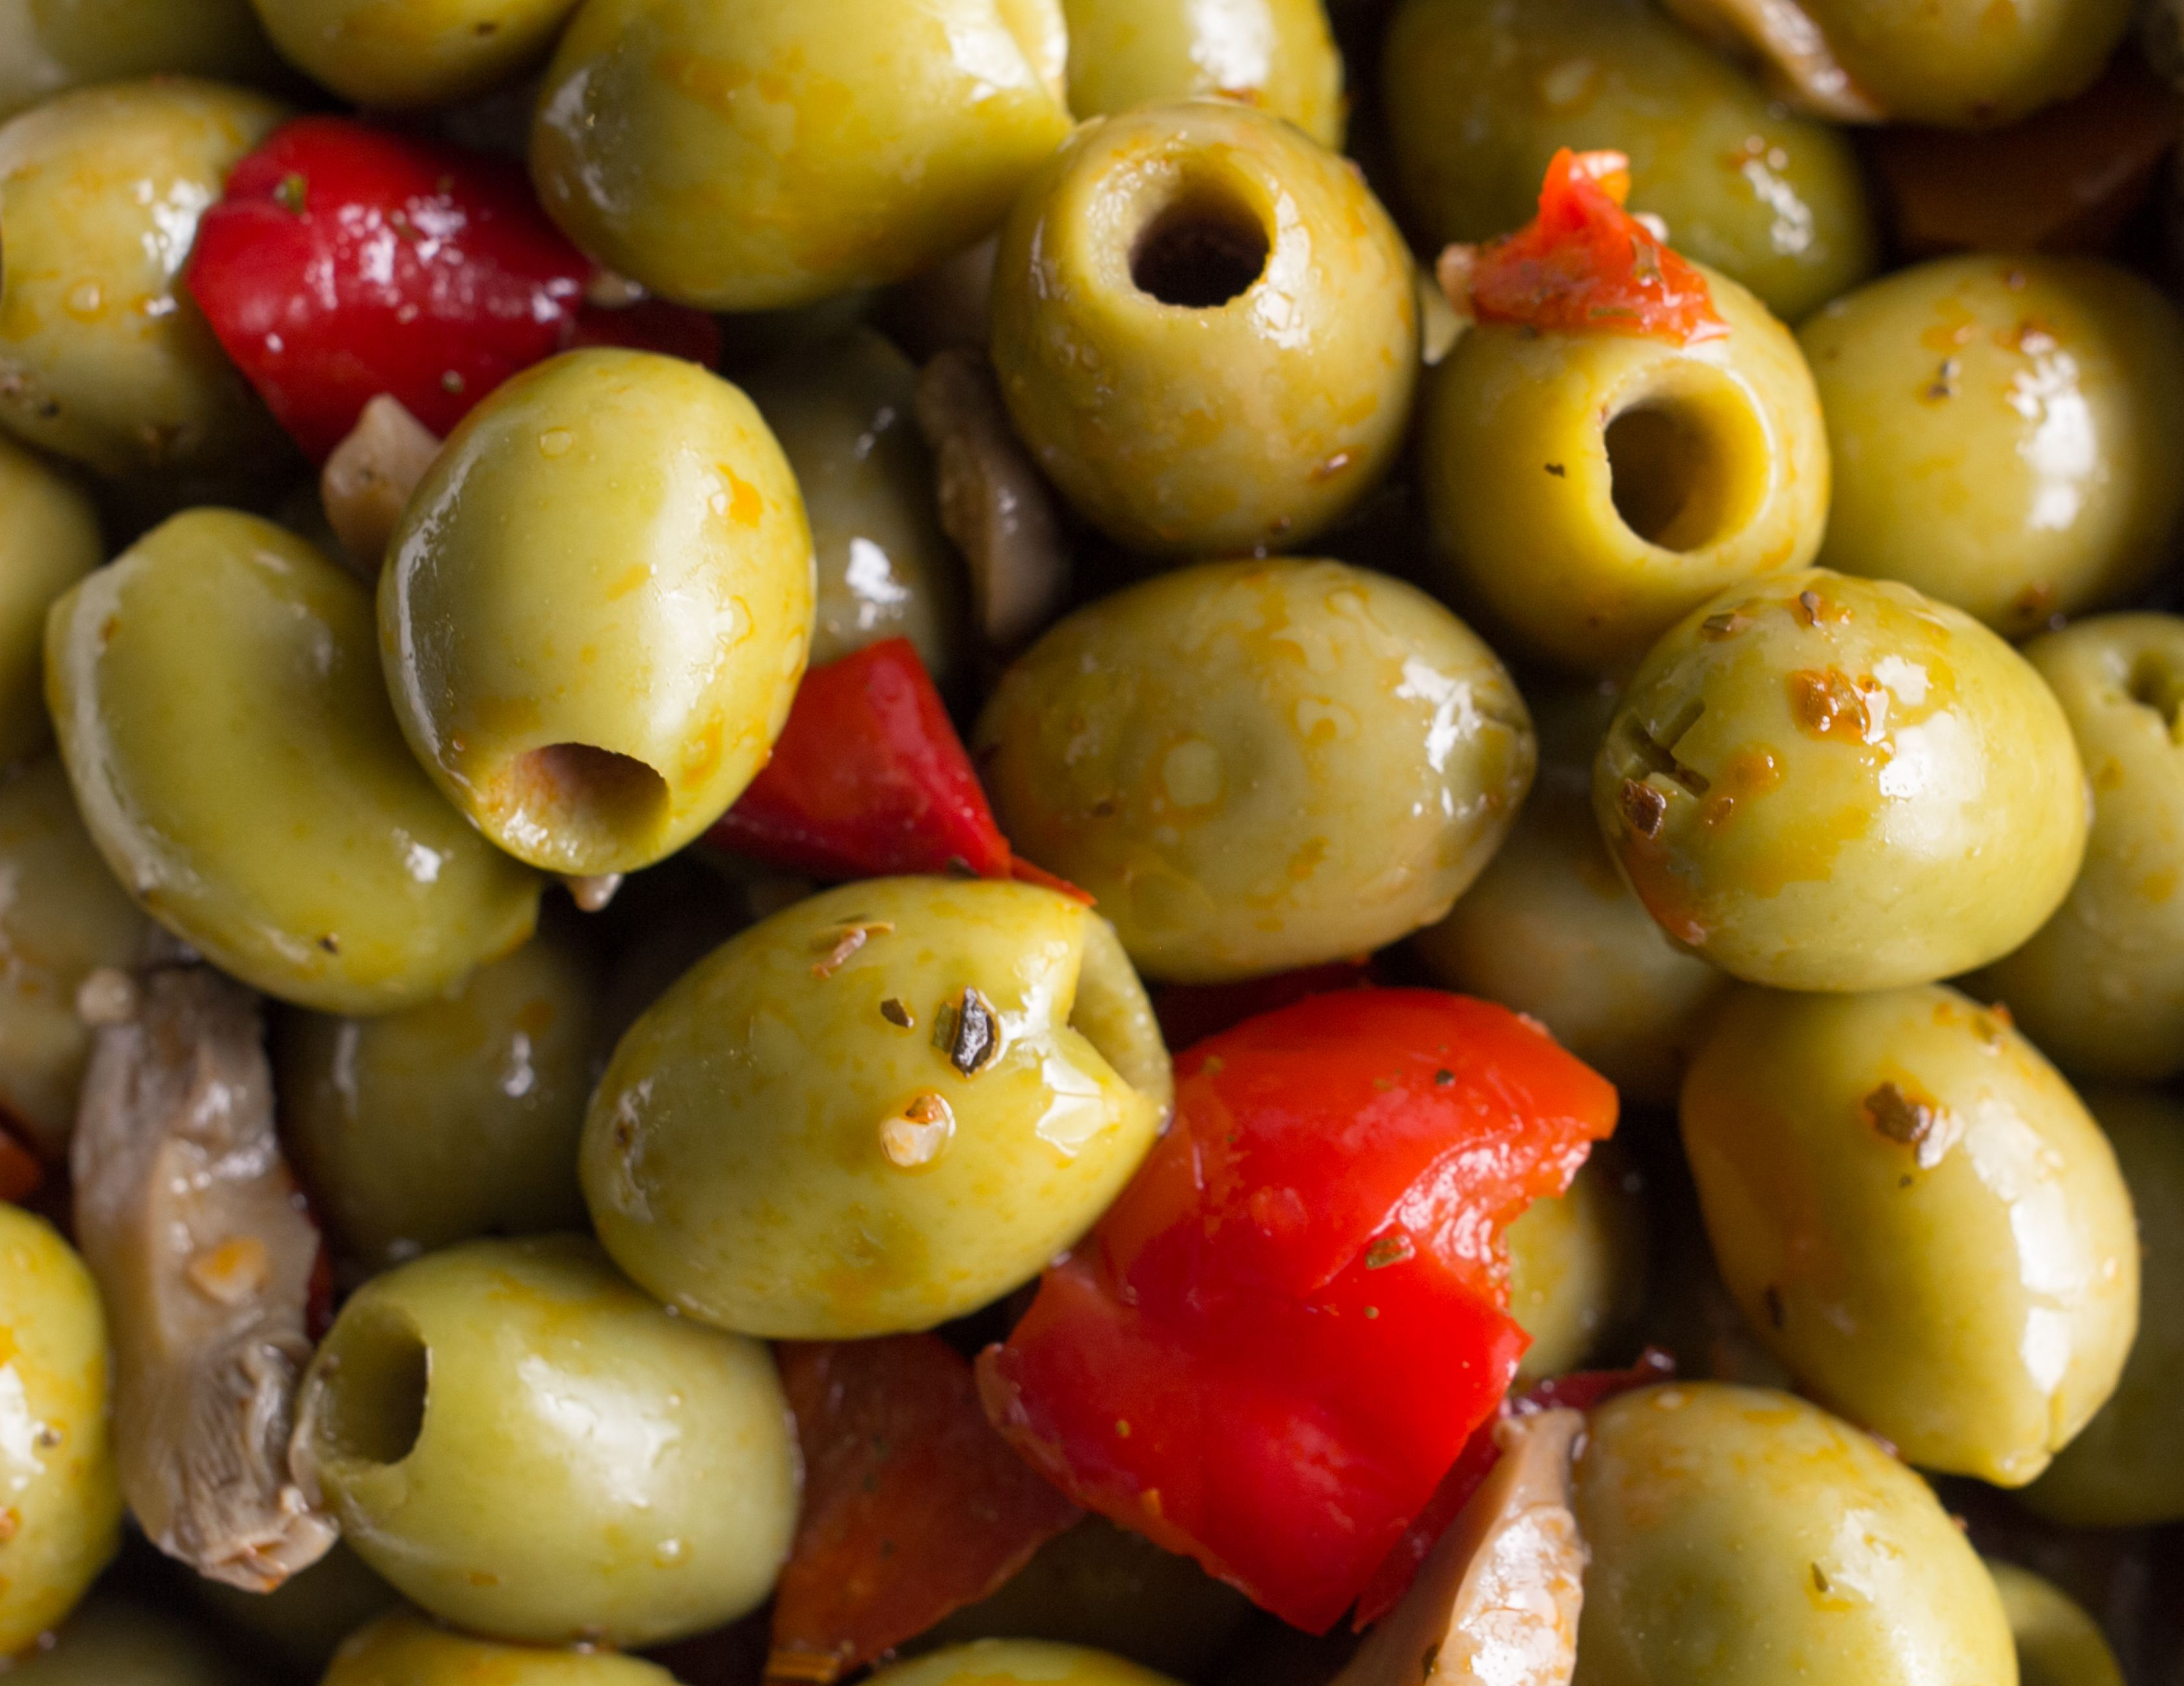 Snack Olives. Large pitted green olives with red peppers and garlic.  Tasty, healthy snack idea.